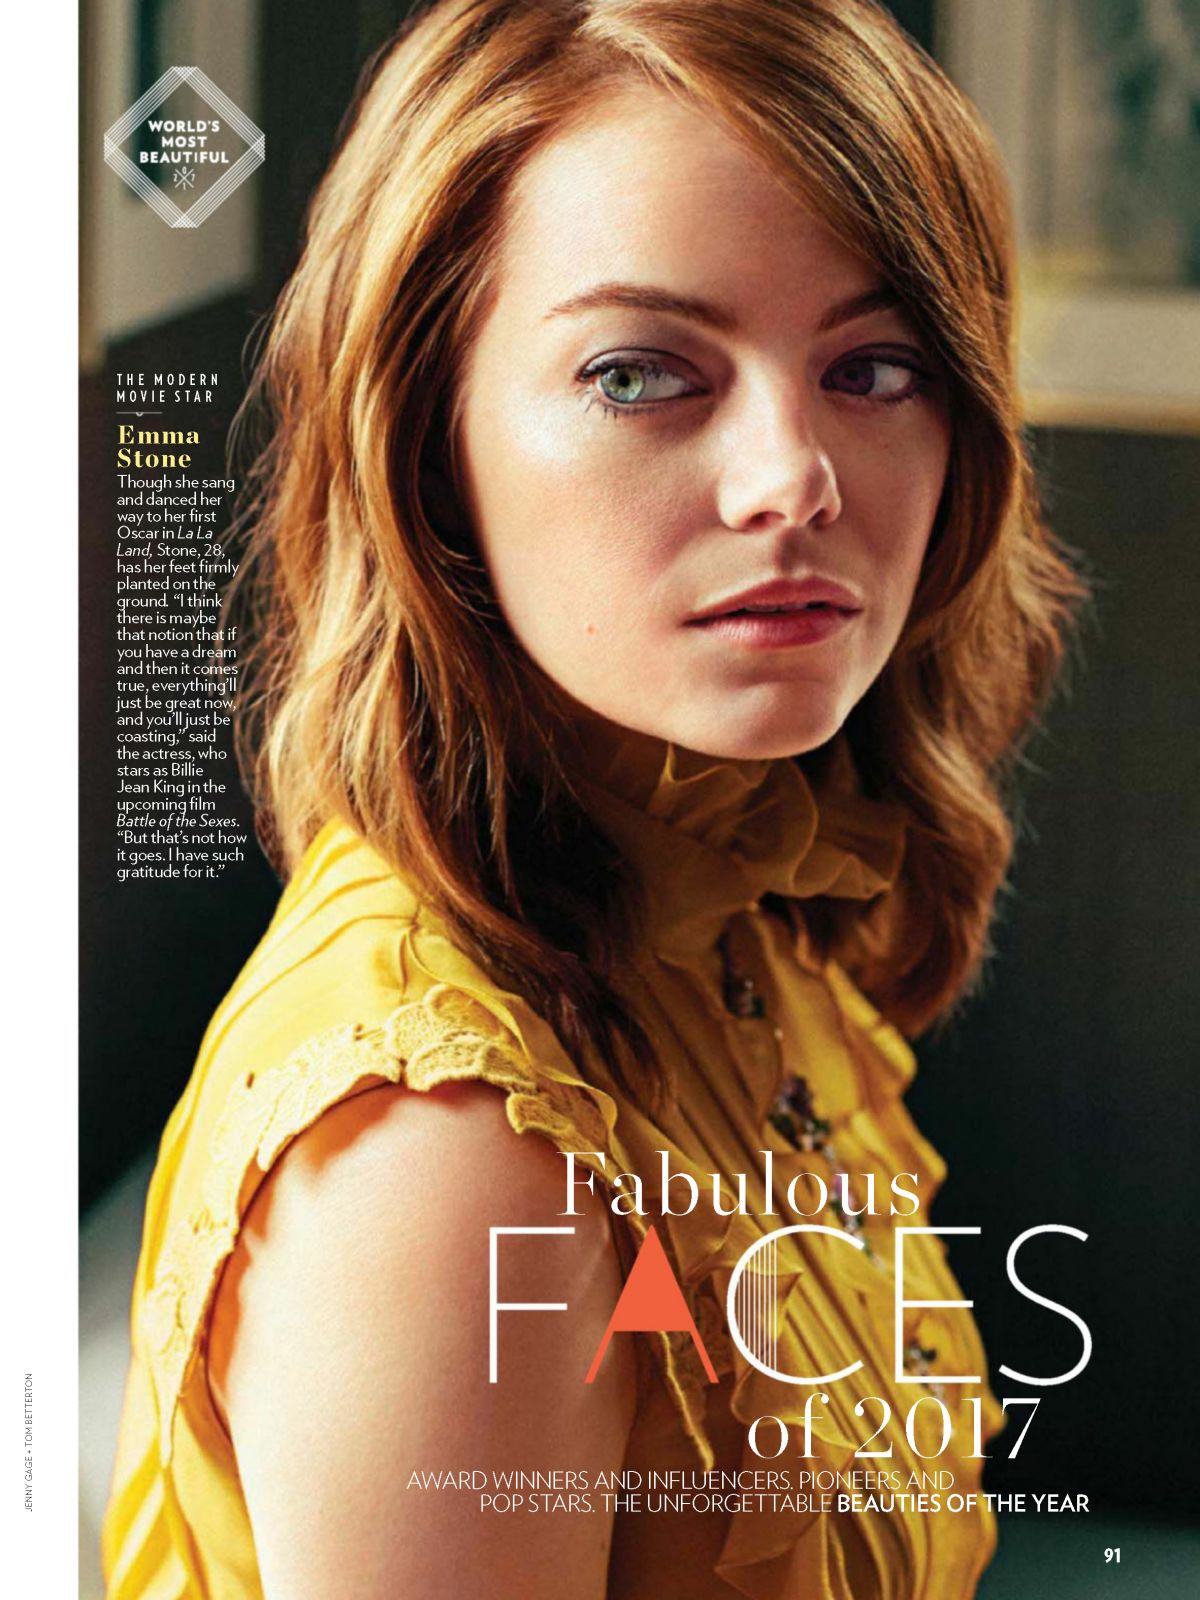 EMMA STONE in People Magazine, May 2017